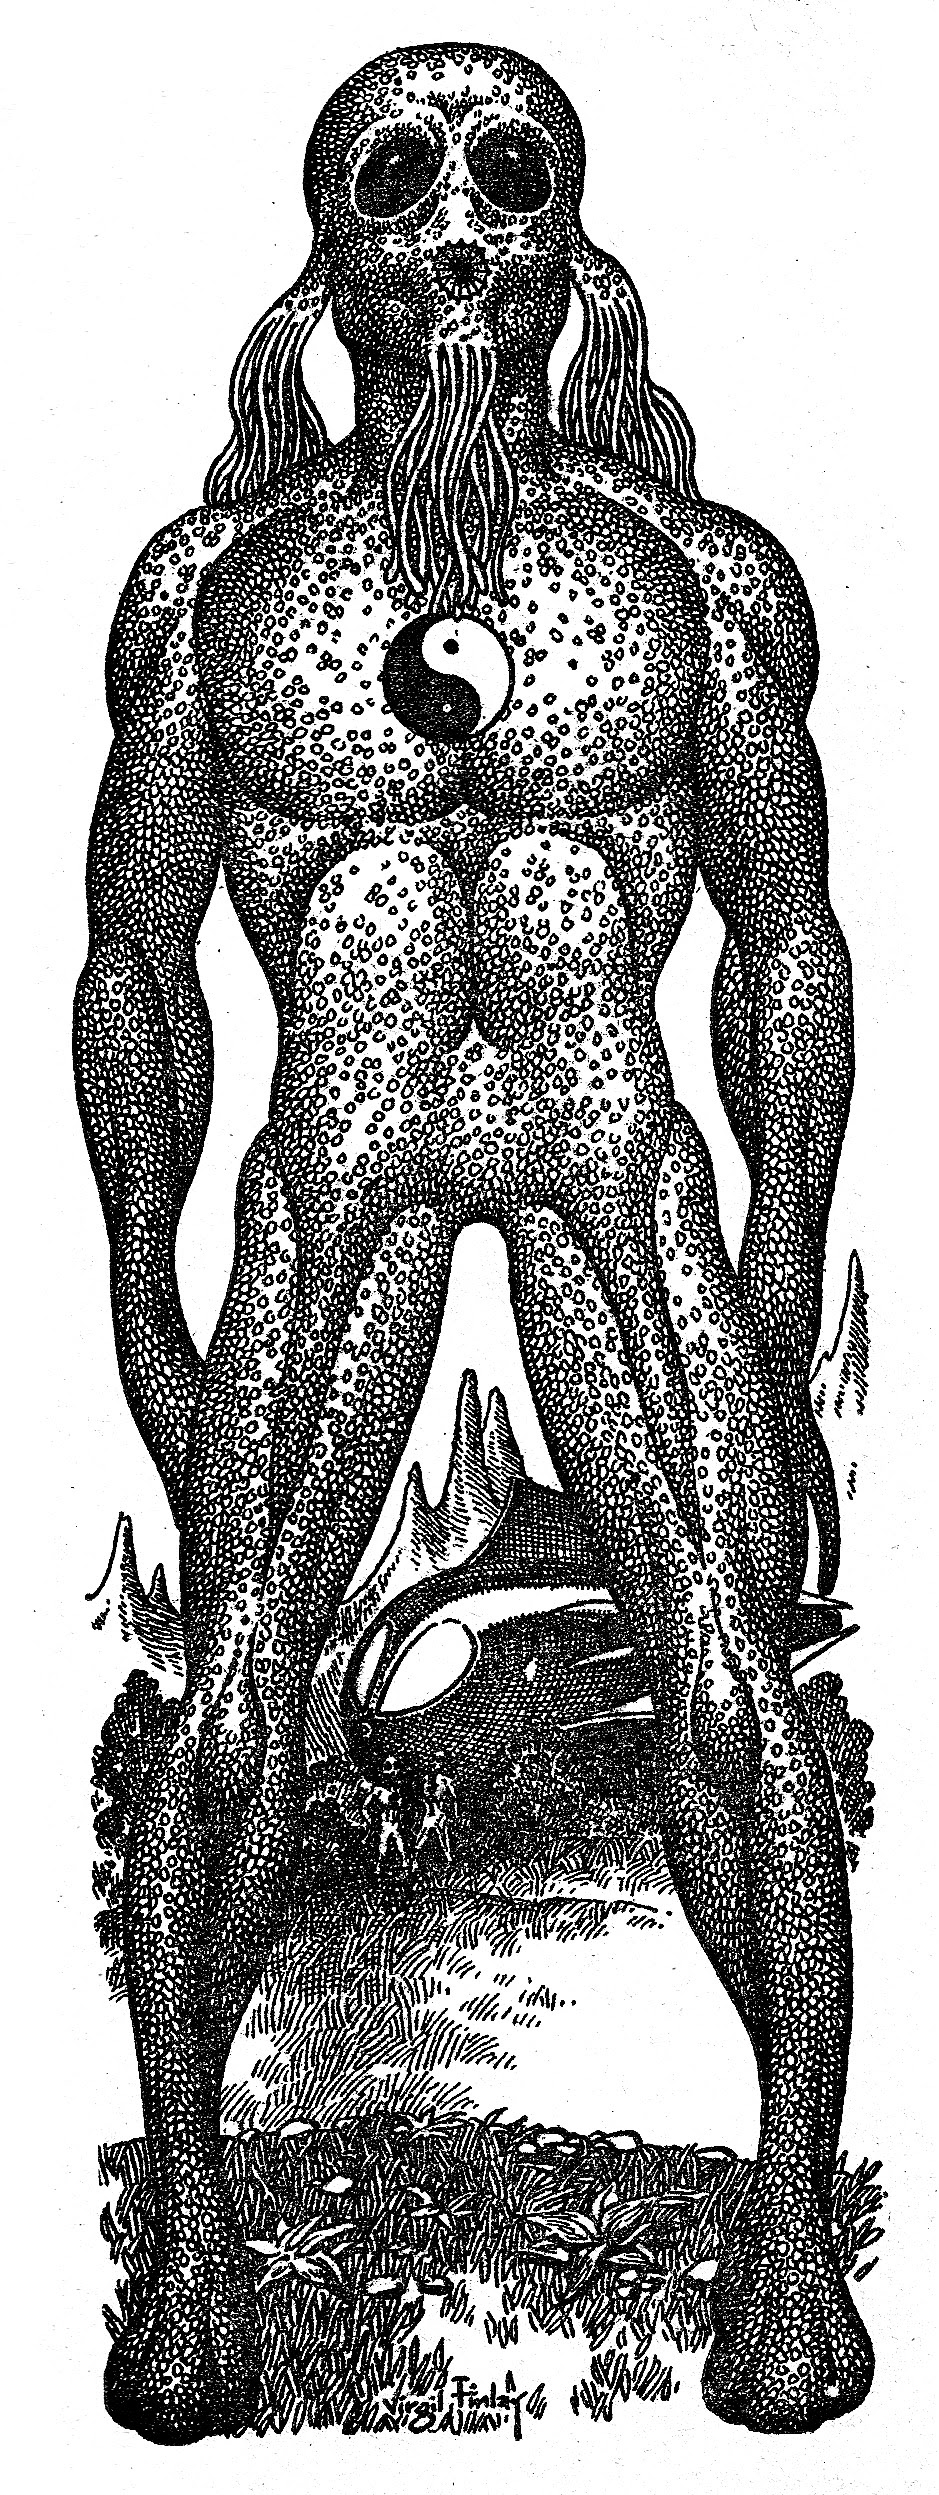 Virgil Finlay - 71, Valley of Creation Alien (1948)